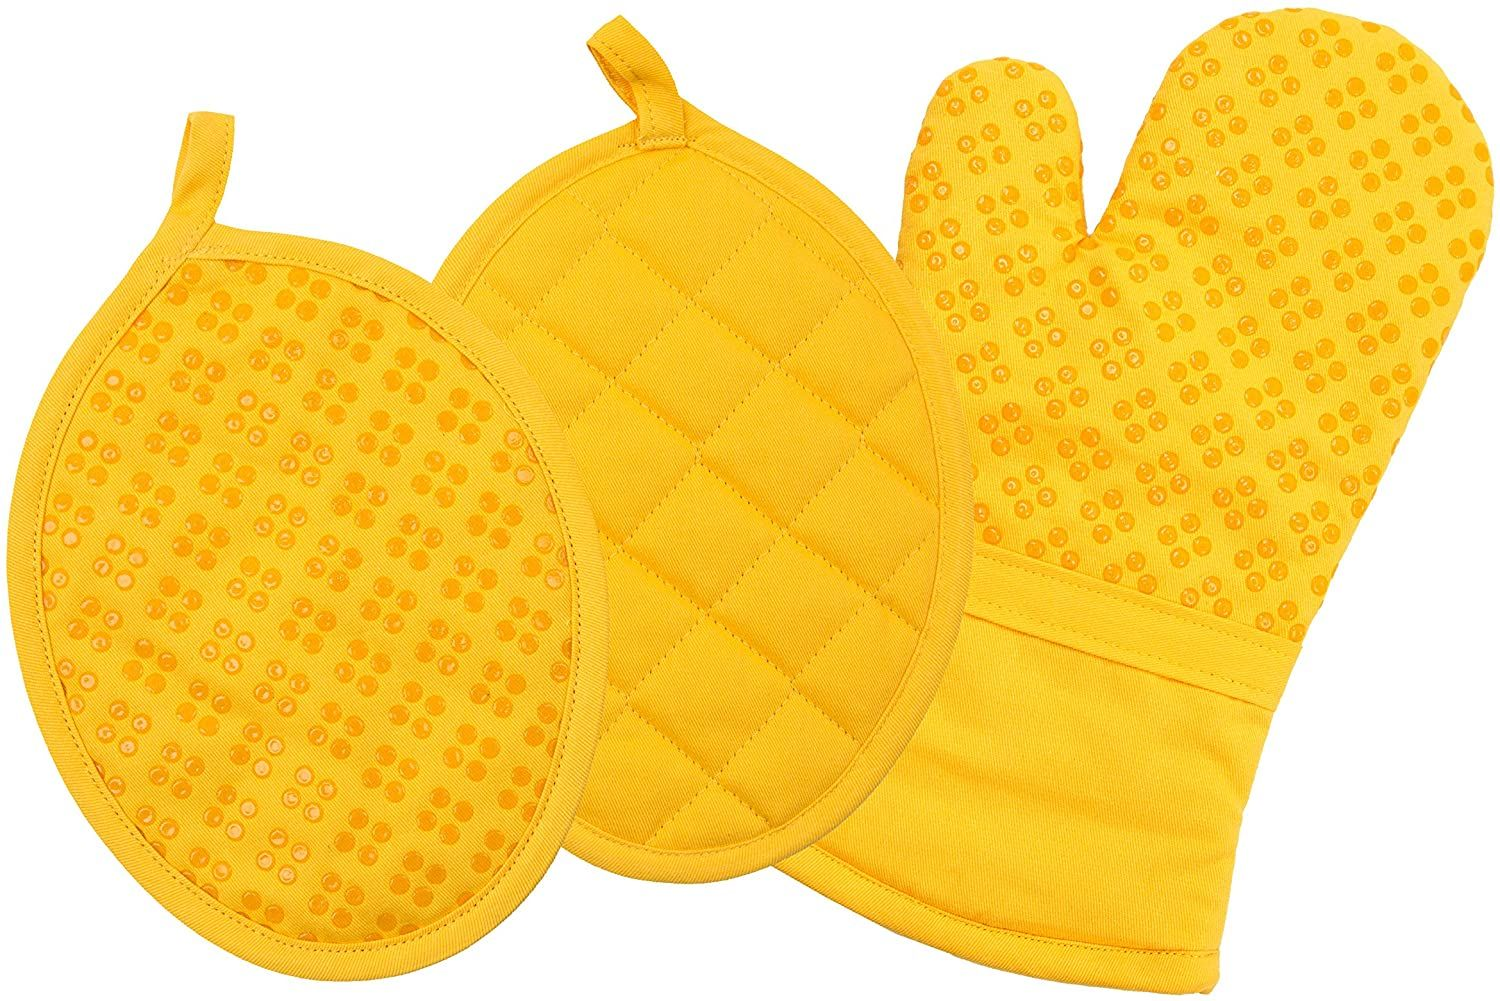 Photo of Sticky Toffee Printed Silicone Oven Mitt and Pot Holders, 100% Cotton, 3 Piece Set – Yellow Silicone Printed